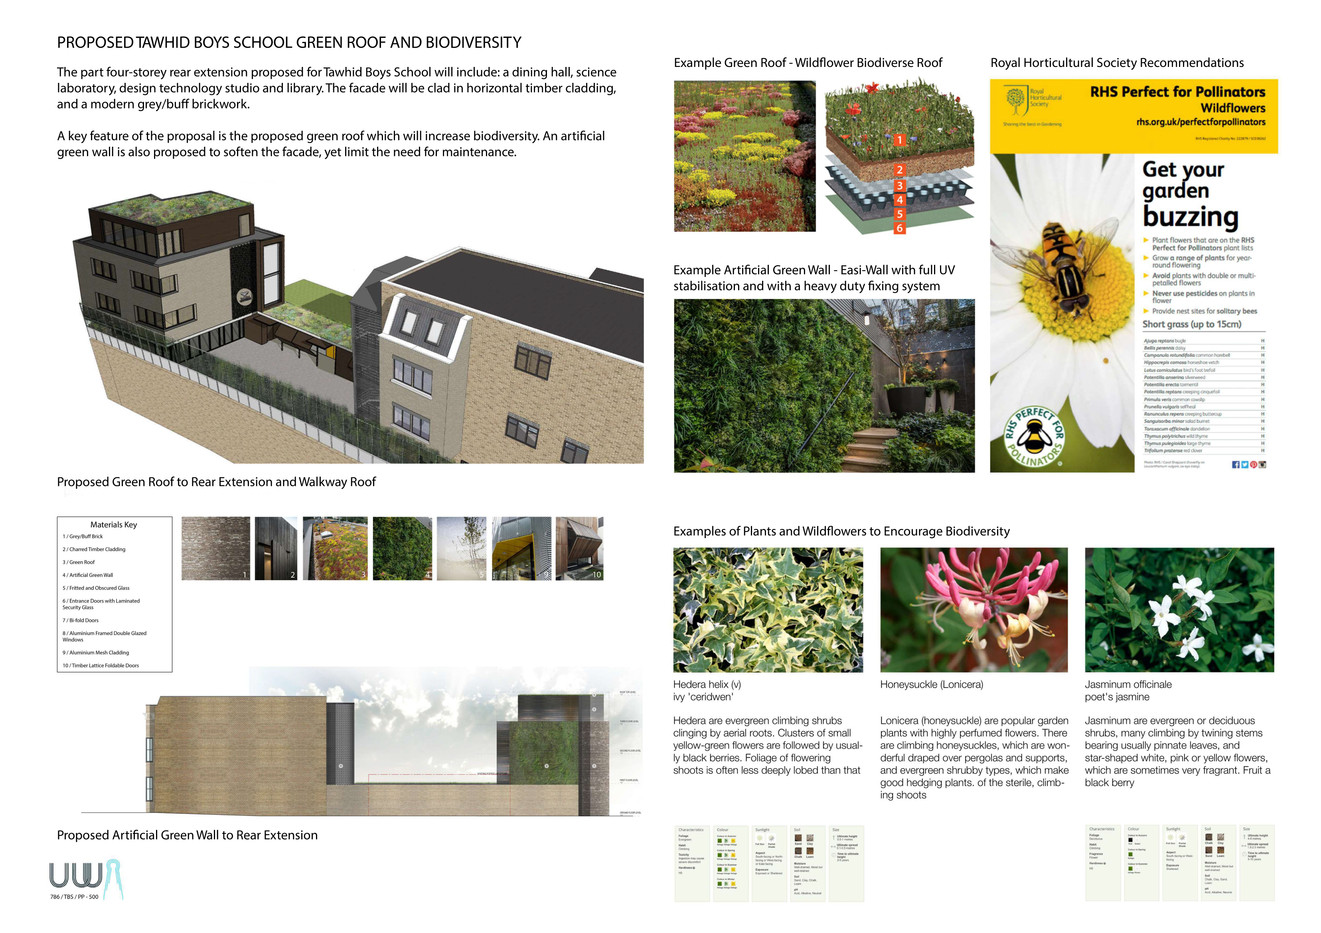 786_TBS_PP_500 PROPOSED GREEN ROOF c.jpg